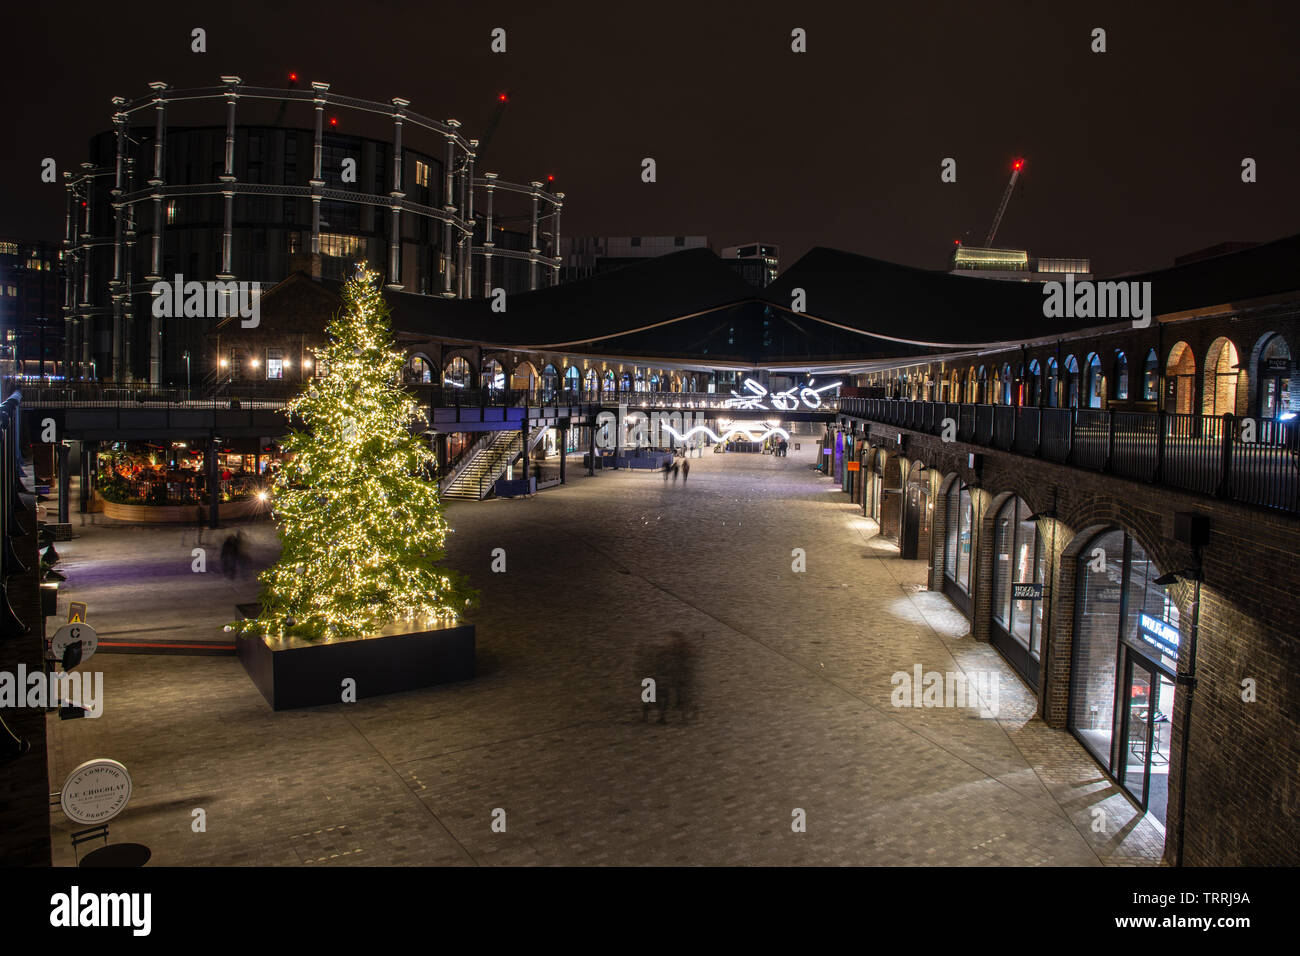 London, England, UK - December 14, 2018: People walk past Christmas decorations at the Coal Drops shopping centre in London's King's Cross regeneratio Stock Photo